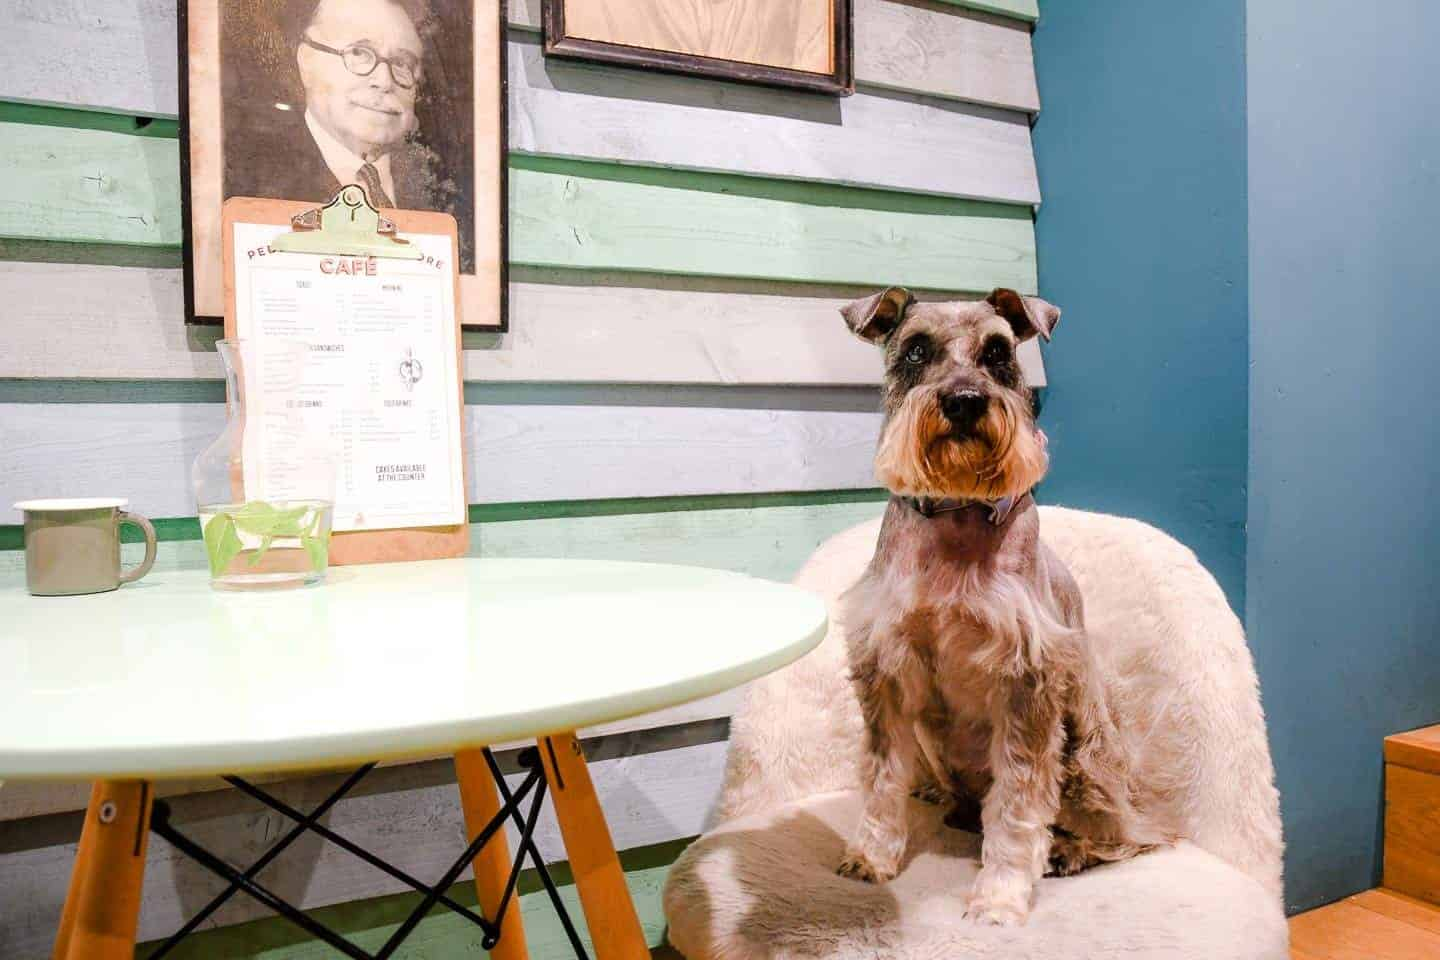 My Dog Friendly London By Pepper Chung The Schnauzer | Notting Hill